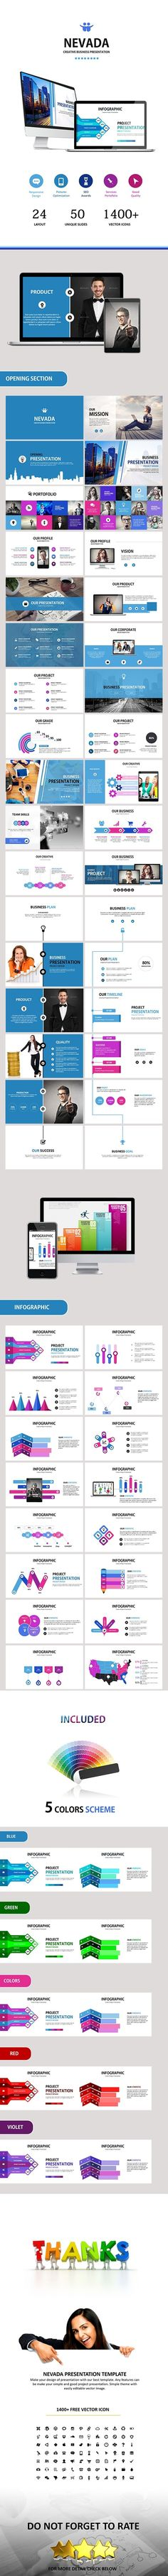 business presentation  presentation and templates on pinterest